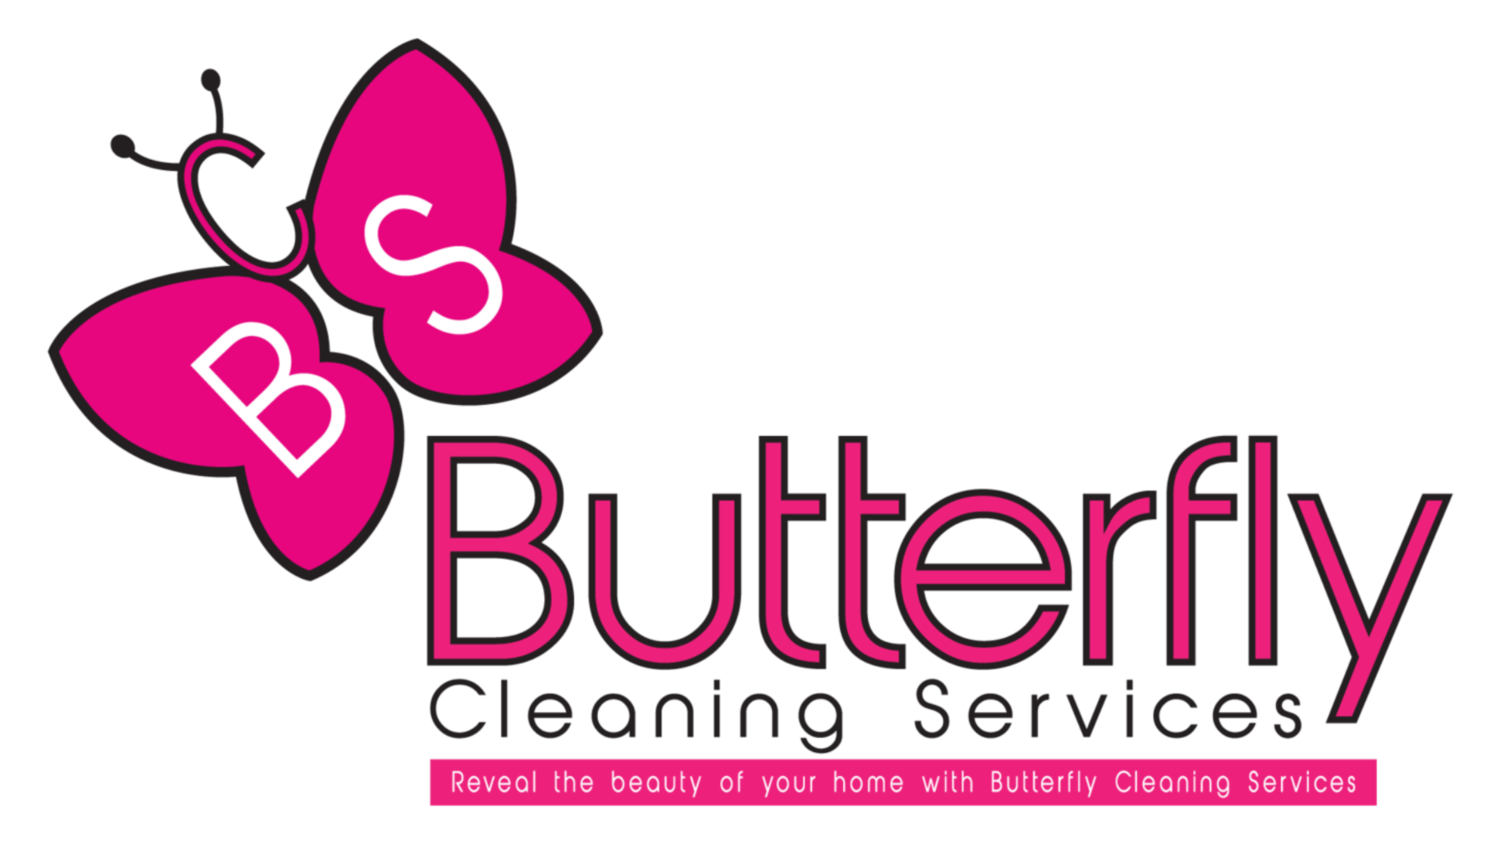 Butterfly Cleaning Services